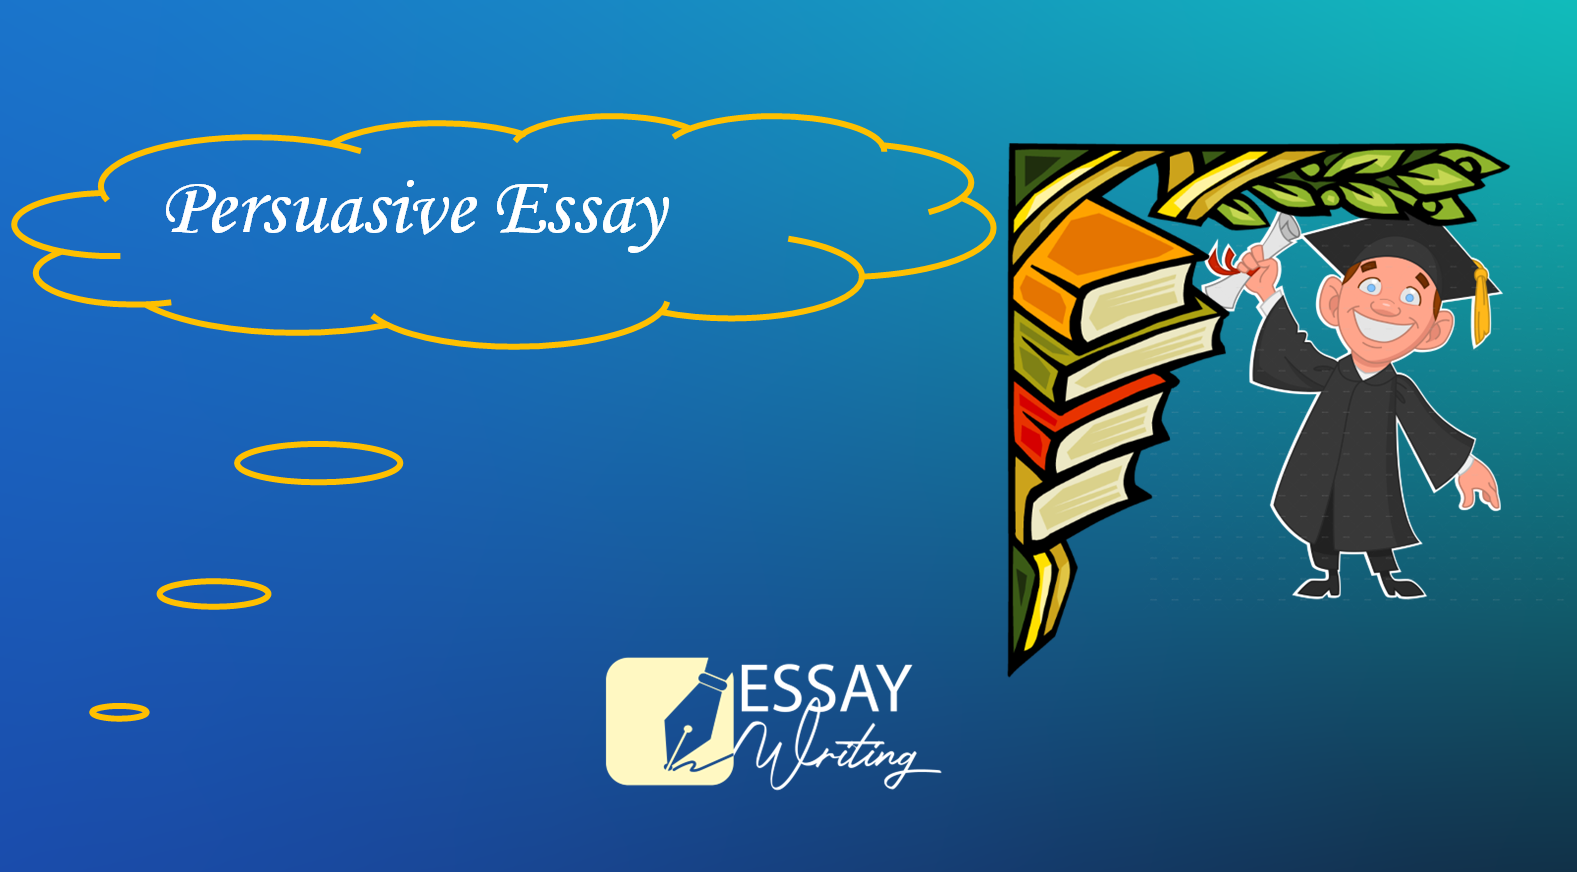 How to Write a Persuasive Essay: Outline and Examples